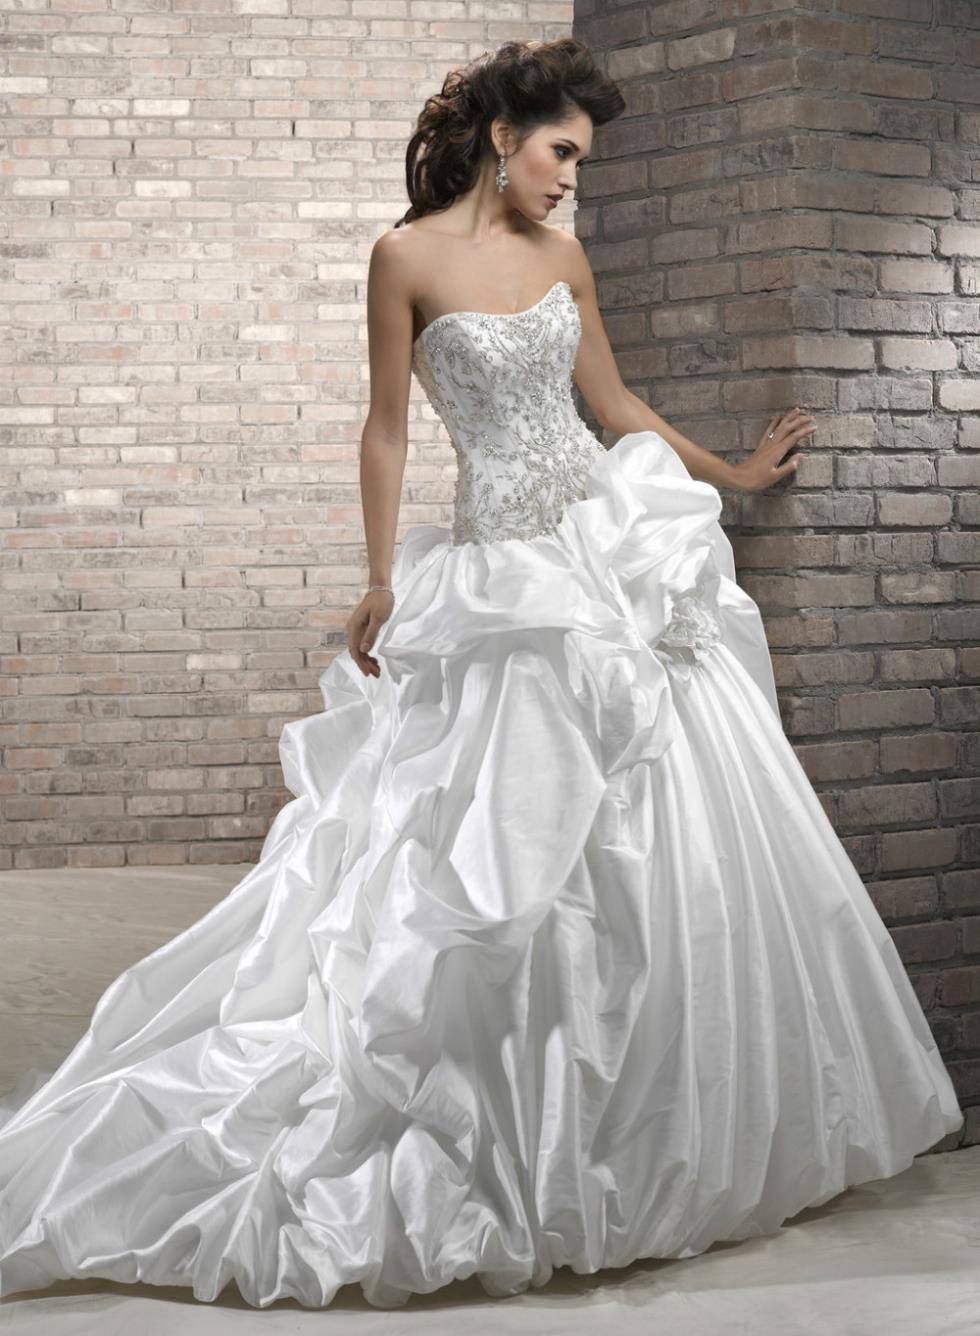 gorgeous ball gown handmade wedding dress with illusion sleeves handmade wedding dresses g 2 g 1